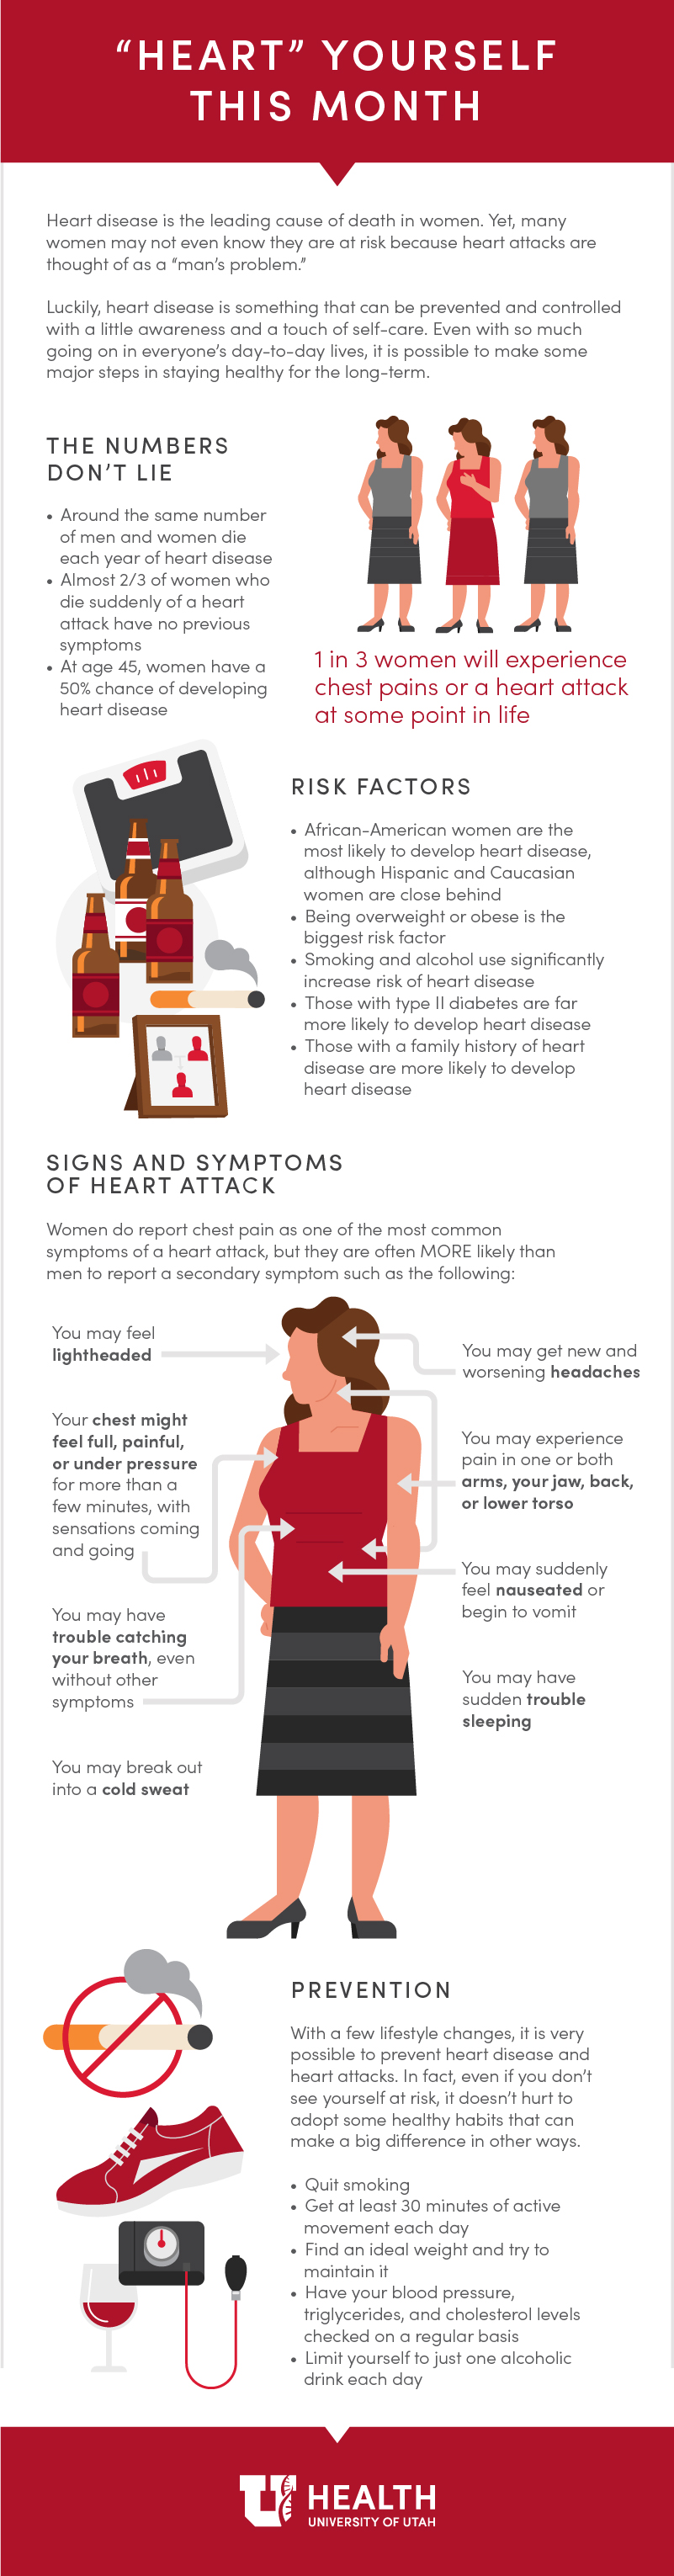 Infographic with facts about women's heart disease